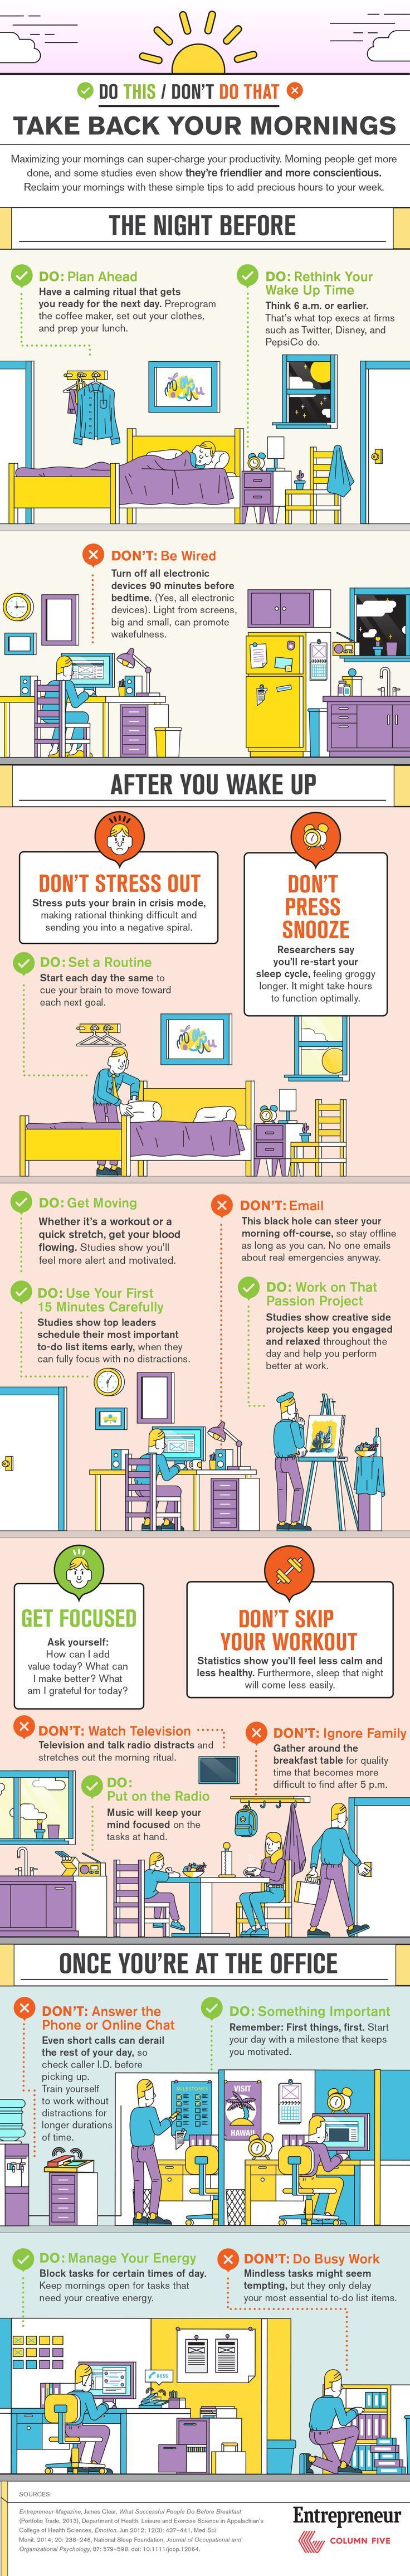 Take Back Your Mornings: do this, don't do that (#infographic)